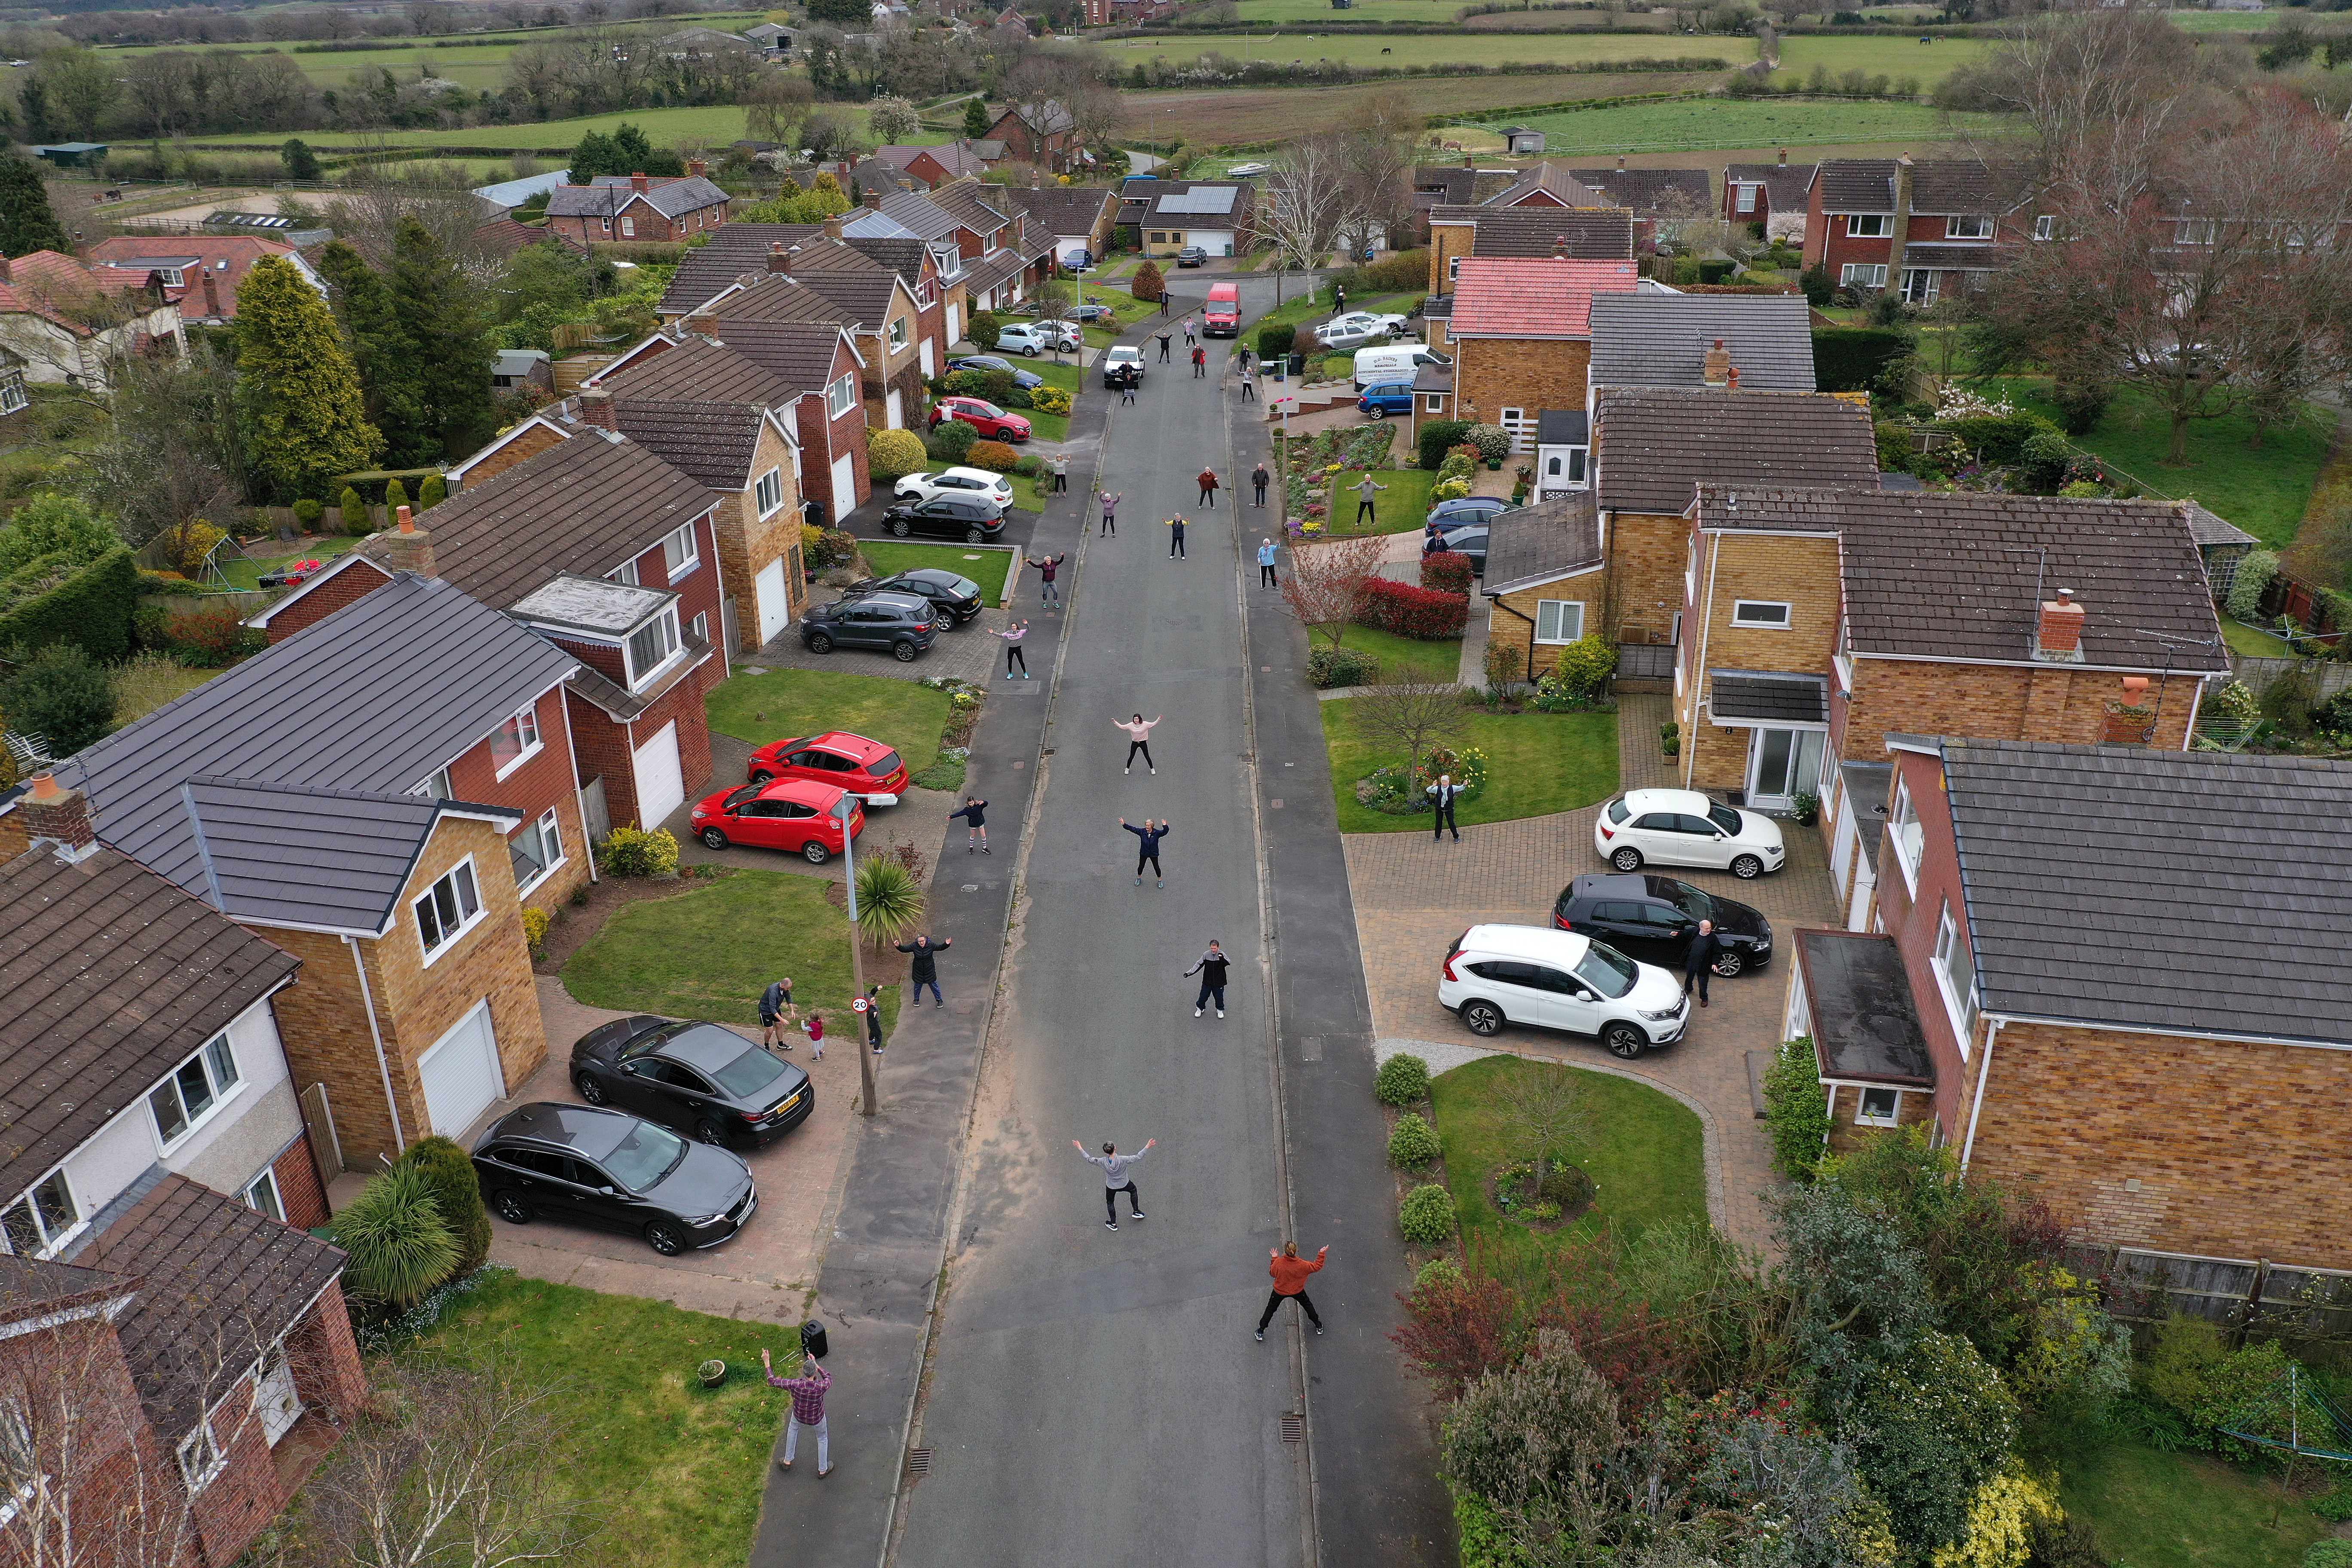 Neighbors in the town of Frodsham, England, participate in a daily social distance dancing and fitness event on April 4.